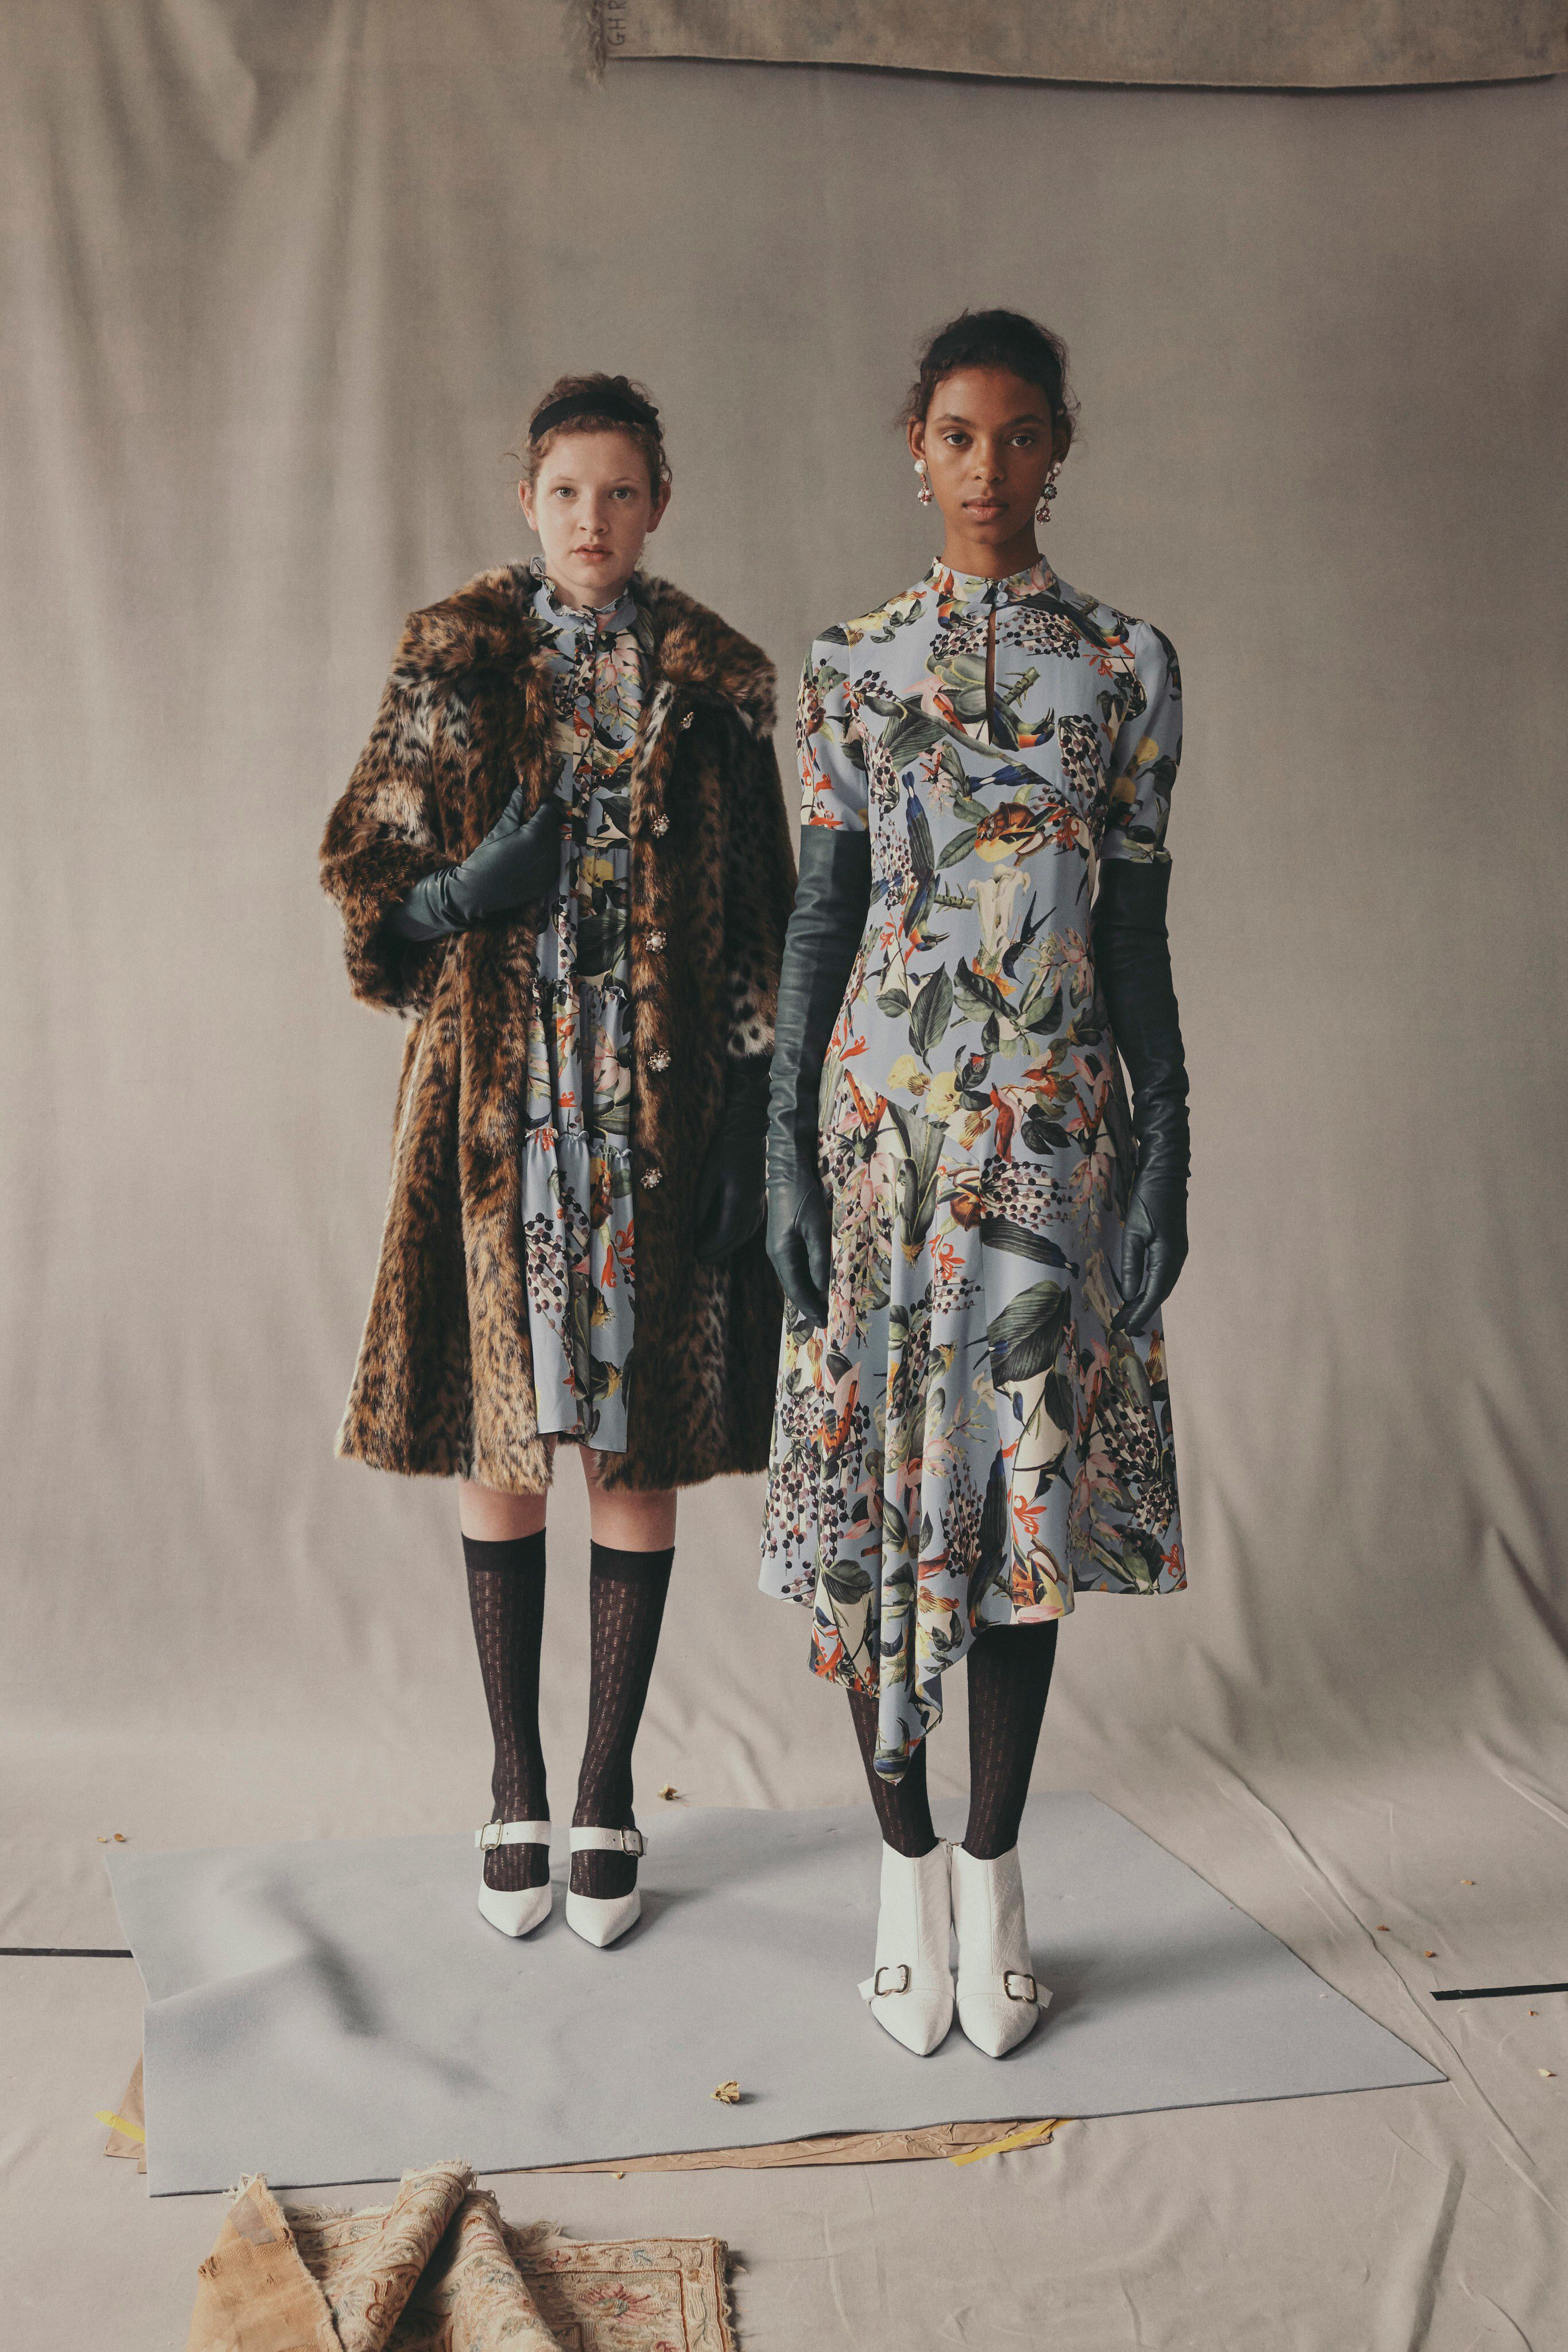 2019 year for girls- Spring pre erdem collection review